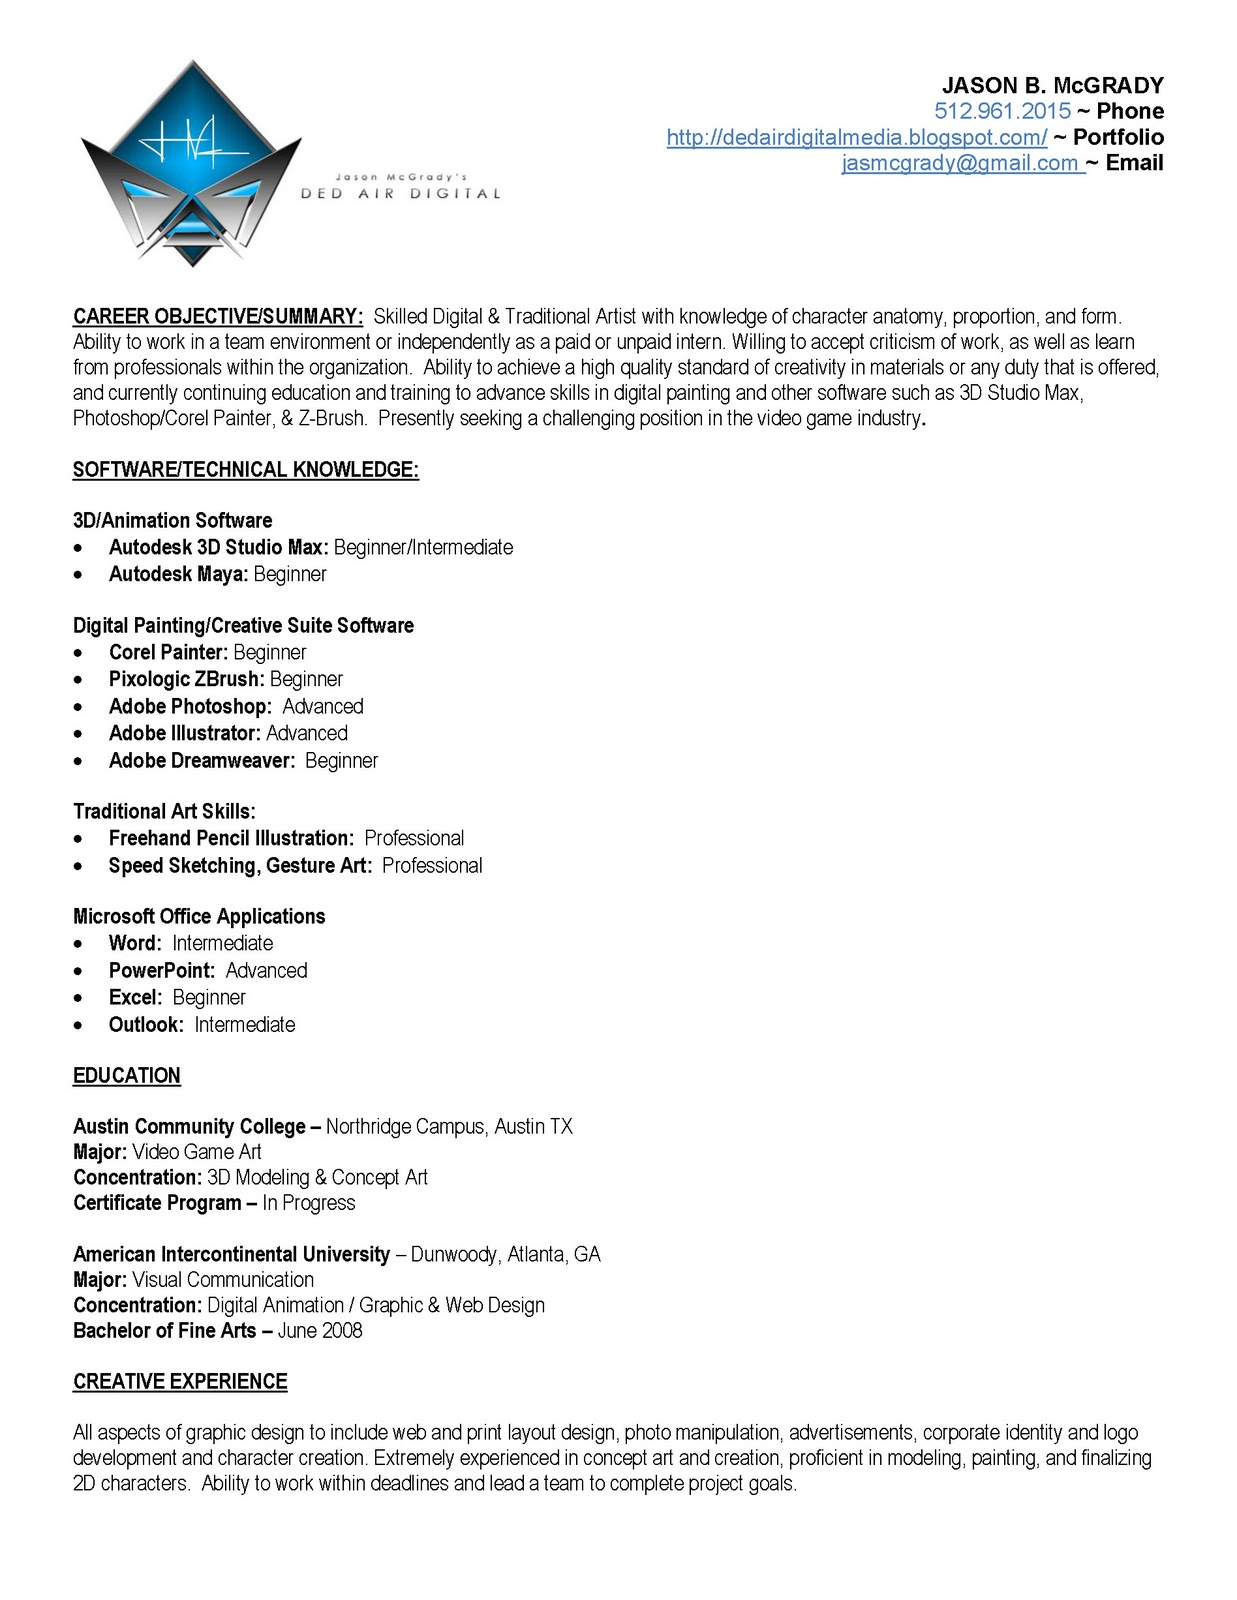 Beautiful 10 Tips For Making A Resume Thick 1099 Contract Template Round 1099 Pay Stub Template 2 Fold Brochure Template Youthful 2 Page Resume Format Example Black2 Page Resumes Samples 1 Page Resume Or 2   Vosvete